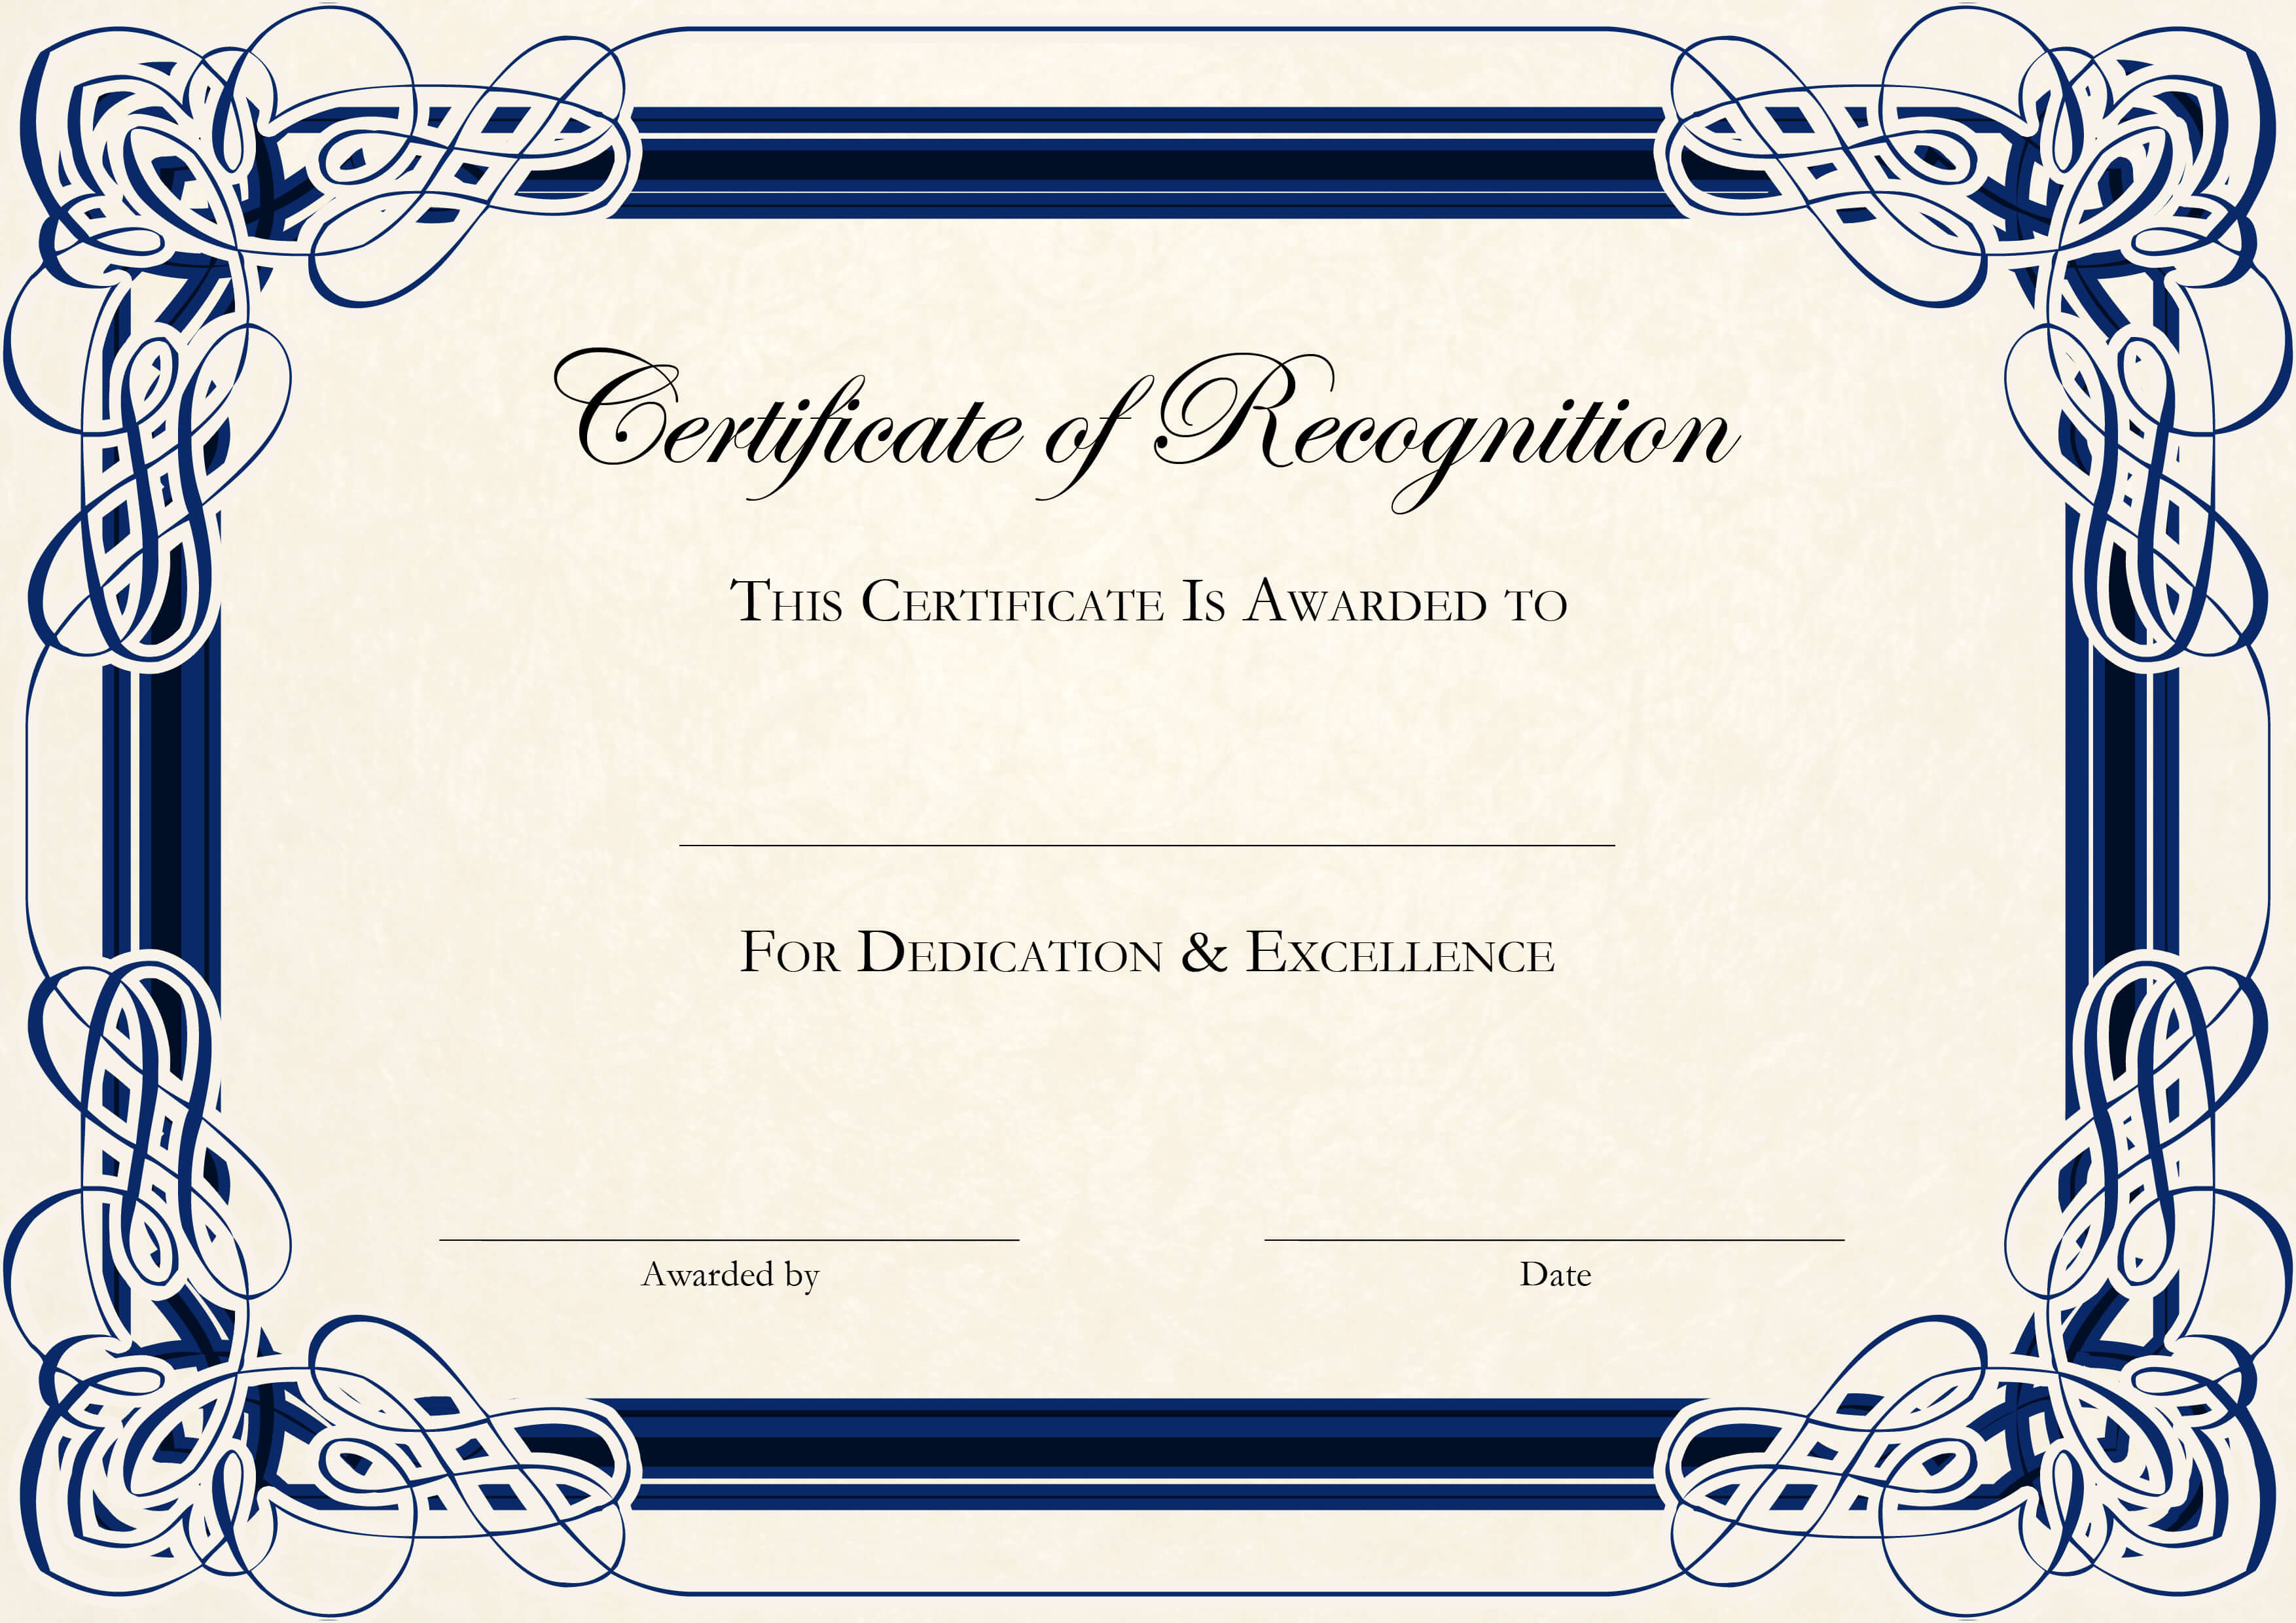 Pdf Award Authority Certificate Template Throughout Certificate Authority Templates